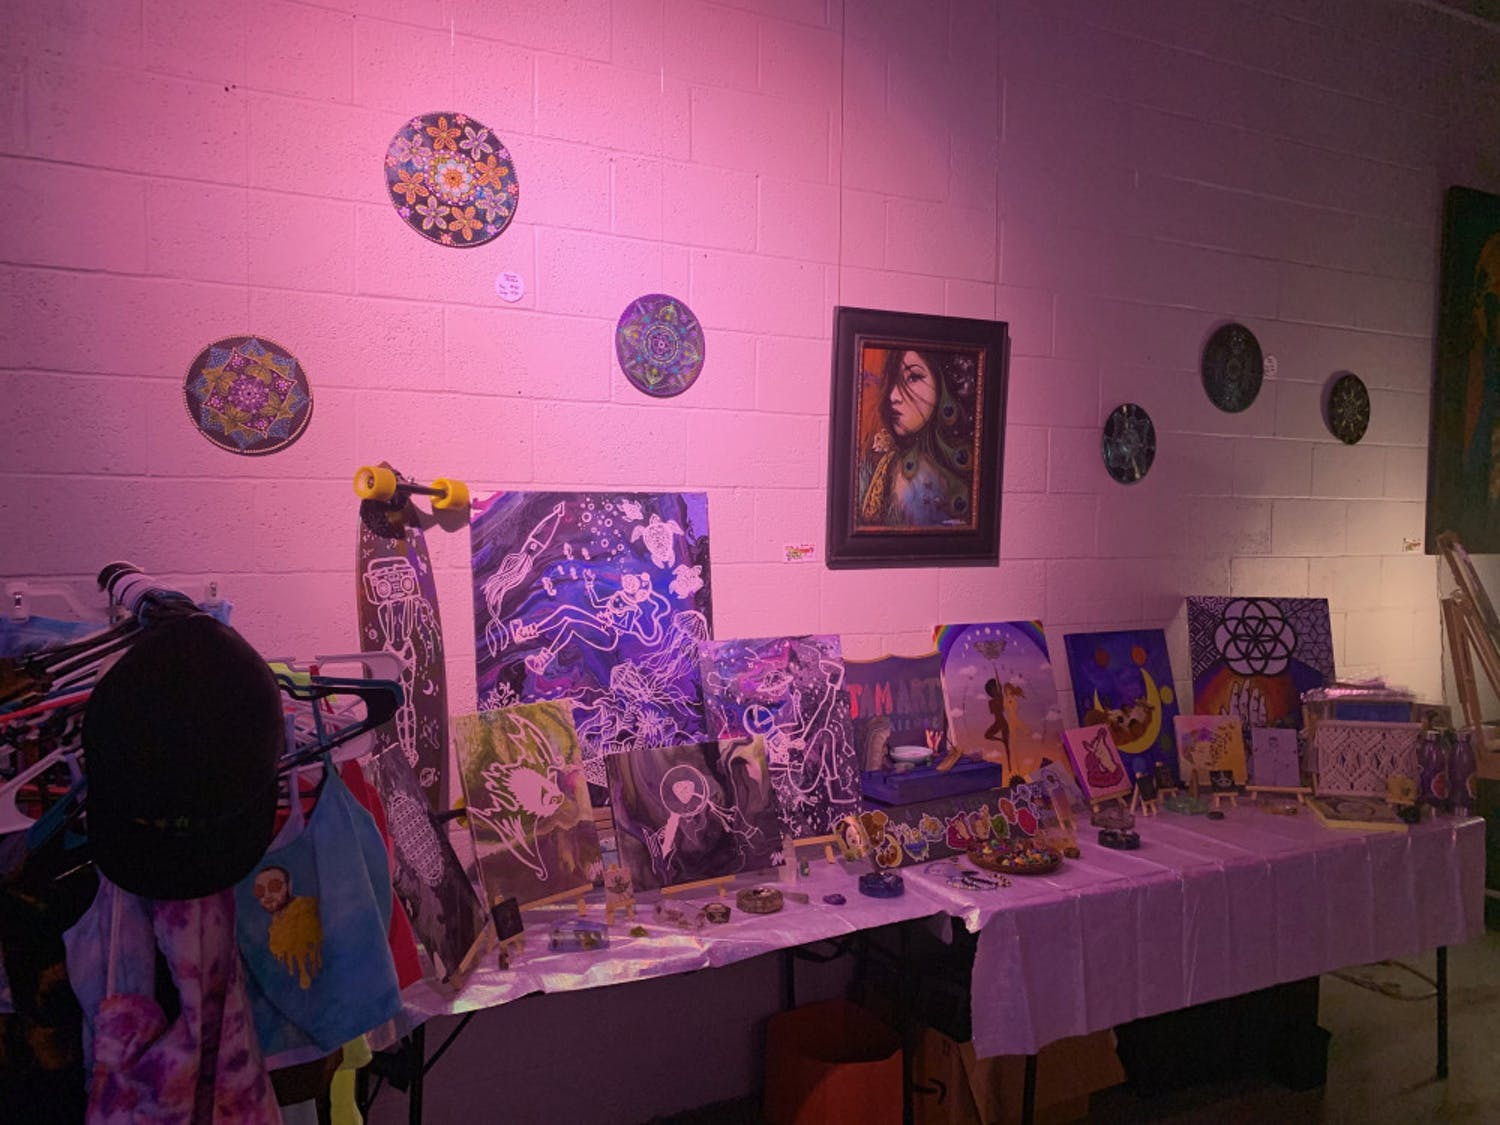 With rainbows and flashing colors of the projector on her art, Julia Monteiro showed her art at the Goddess Visions Artwalk Exhibition.